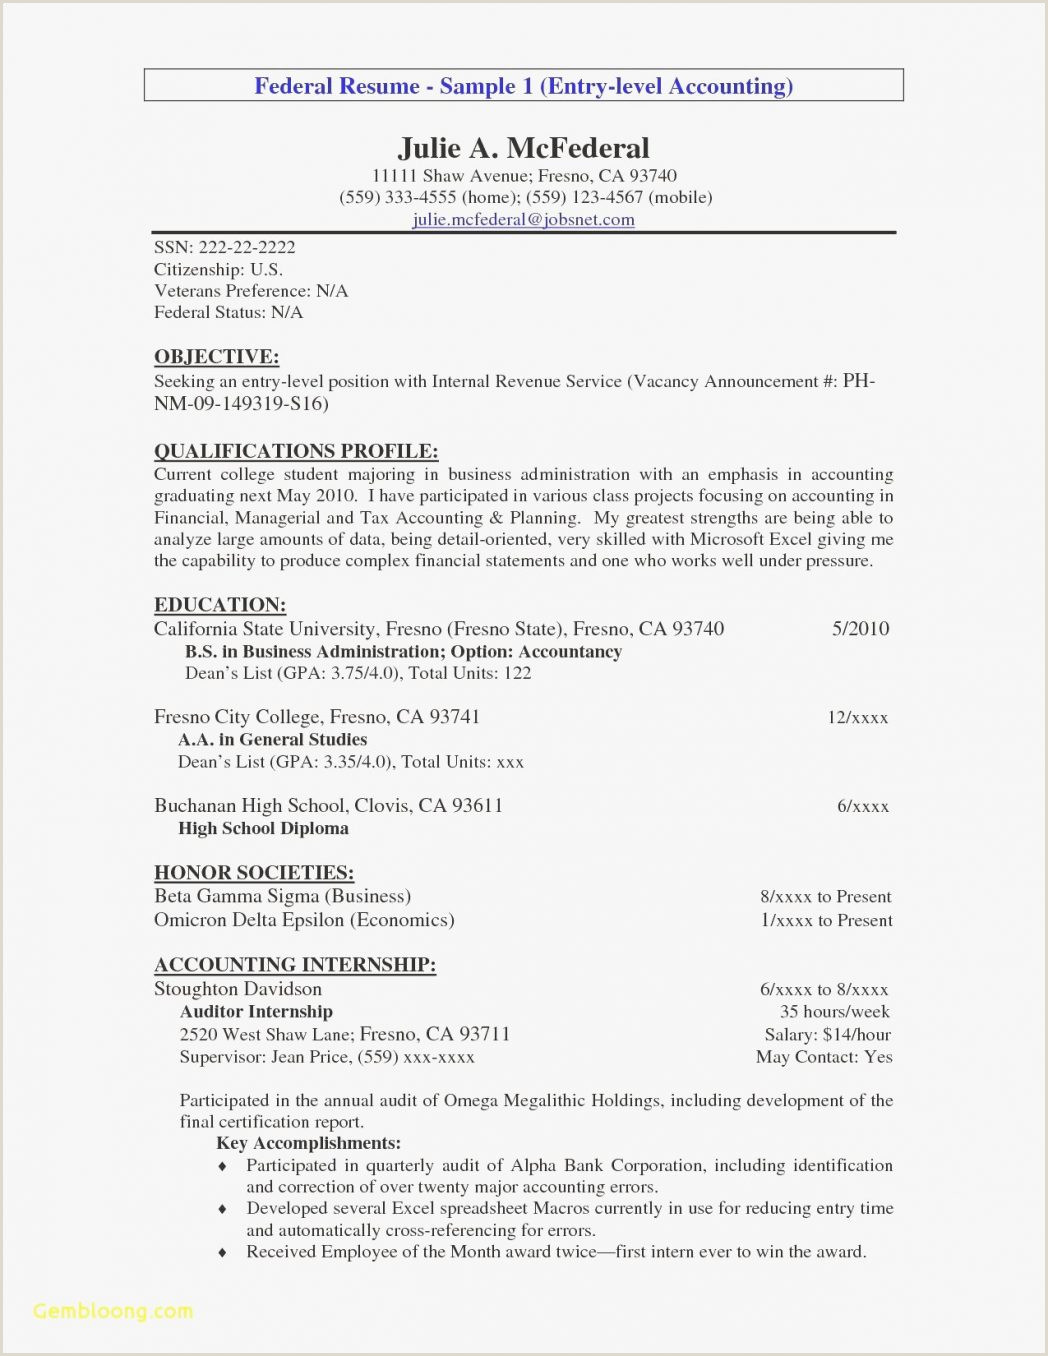 Cover Letter De Shaw Exclusive Entry Level Examples Elegant